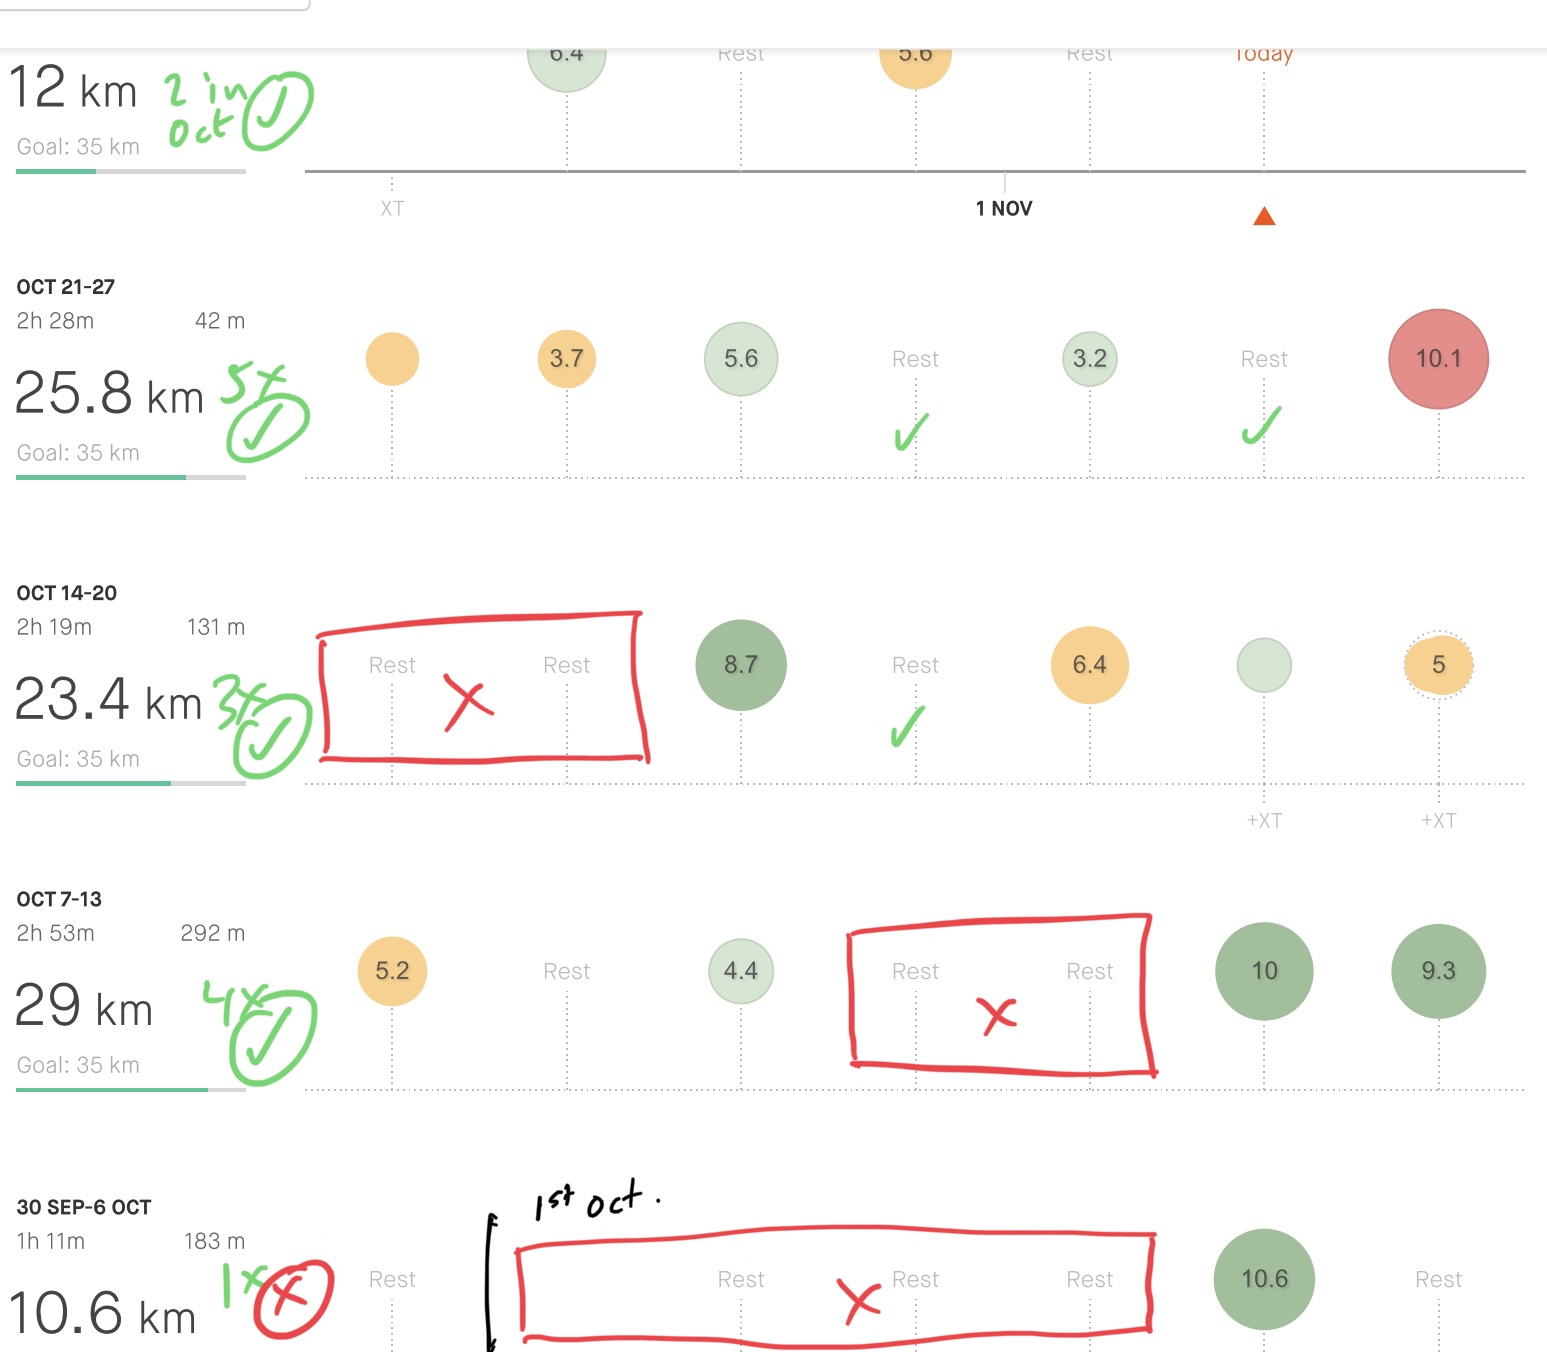 A screen grab of my Strava training log. I've drawn over it gaps in running and tallied up my runs for the weeks.